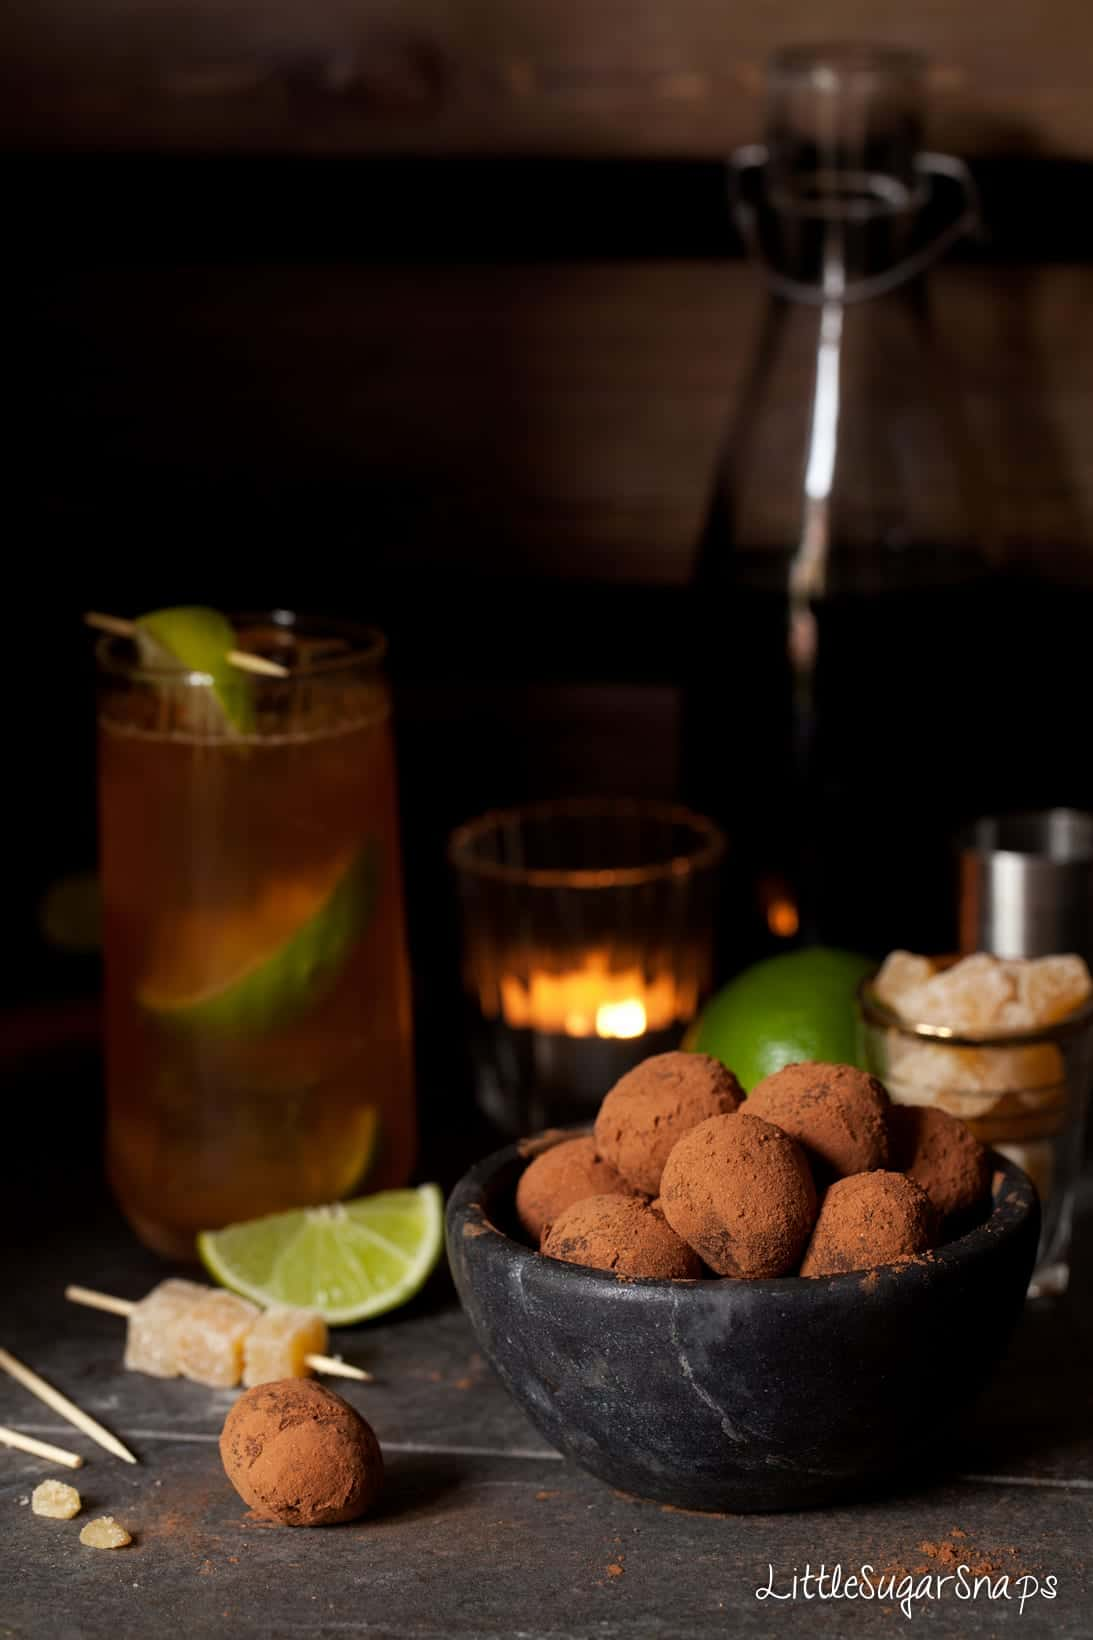 Ginger Truffles in a black bowl with a Dark n Stormy cocktail behind it.